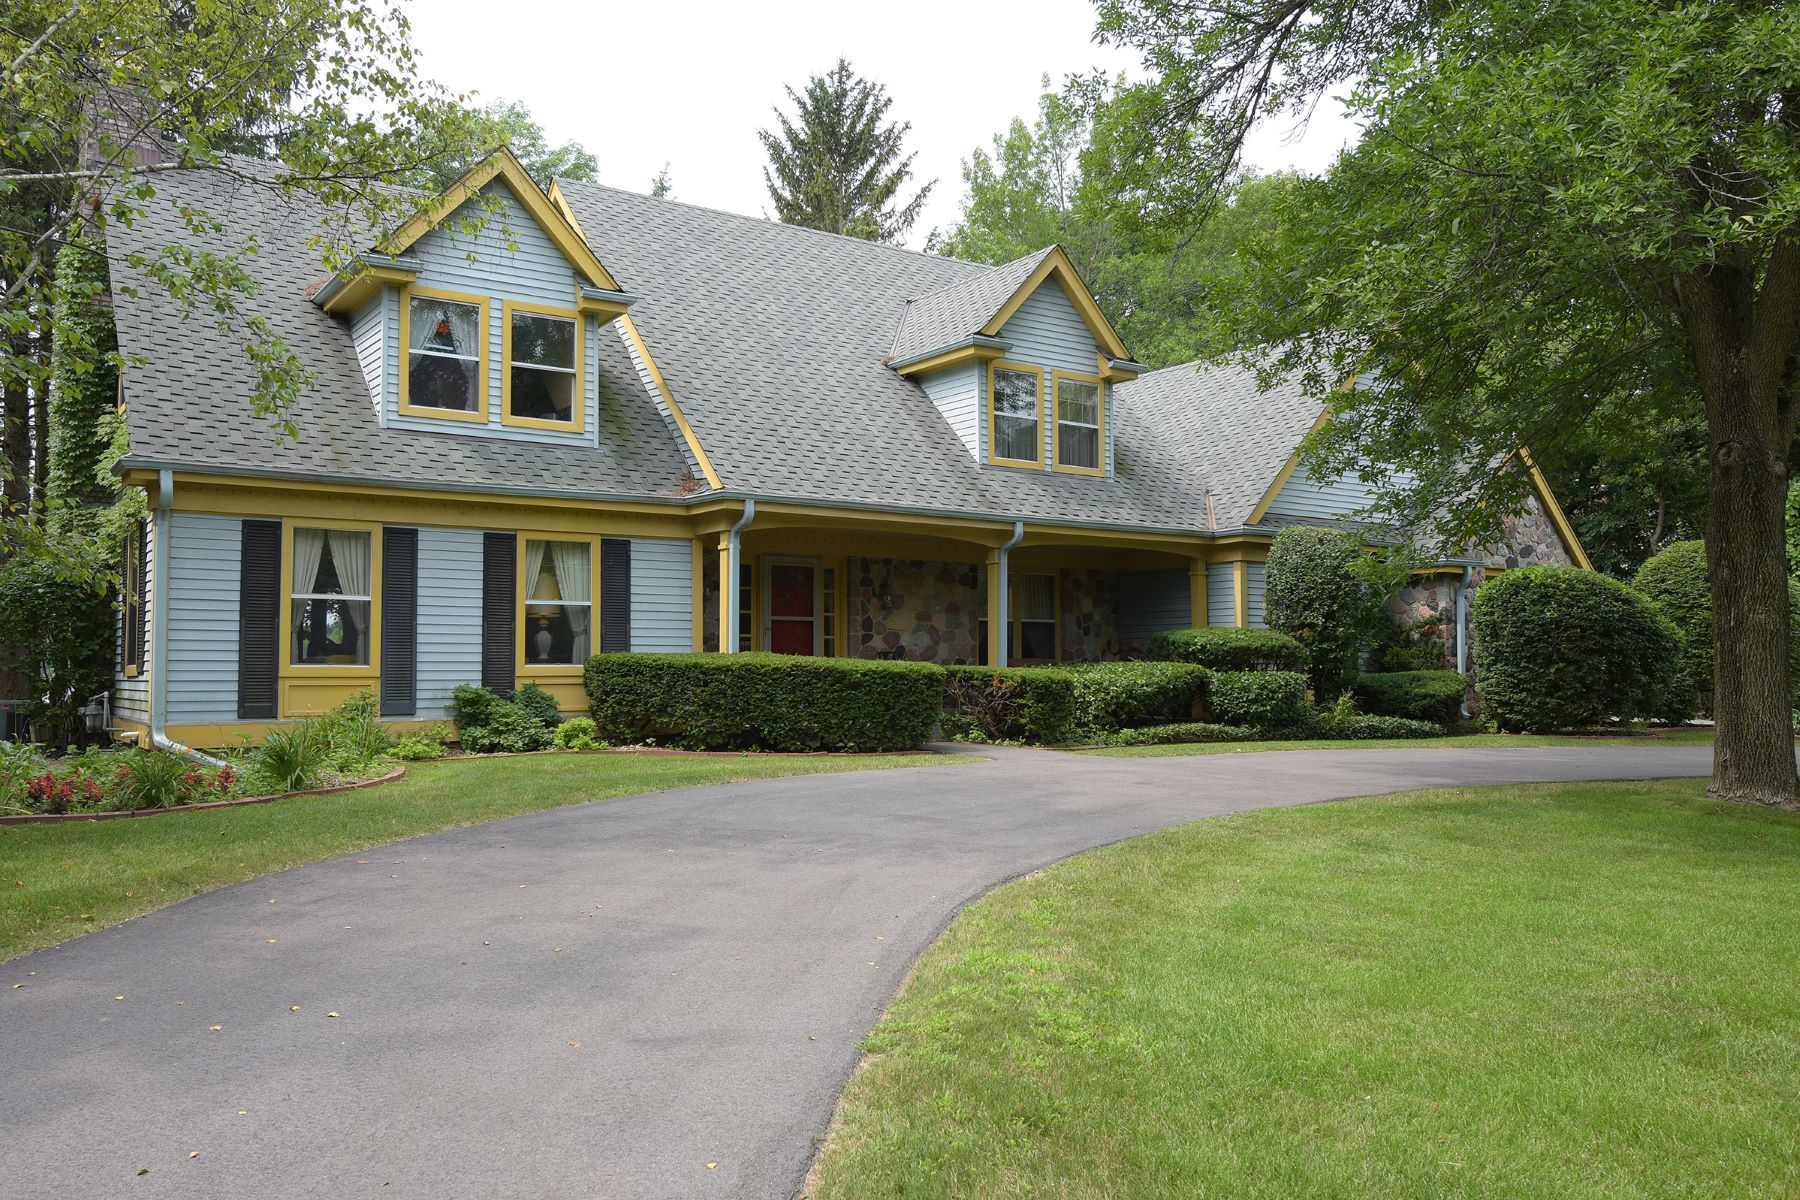 Single Family Home for Sale at Rare opportunity on desirable Lac du Cours 3827 W. Le Grande Blvd Mequon, Wisconsin 53092 United States